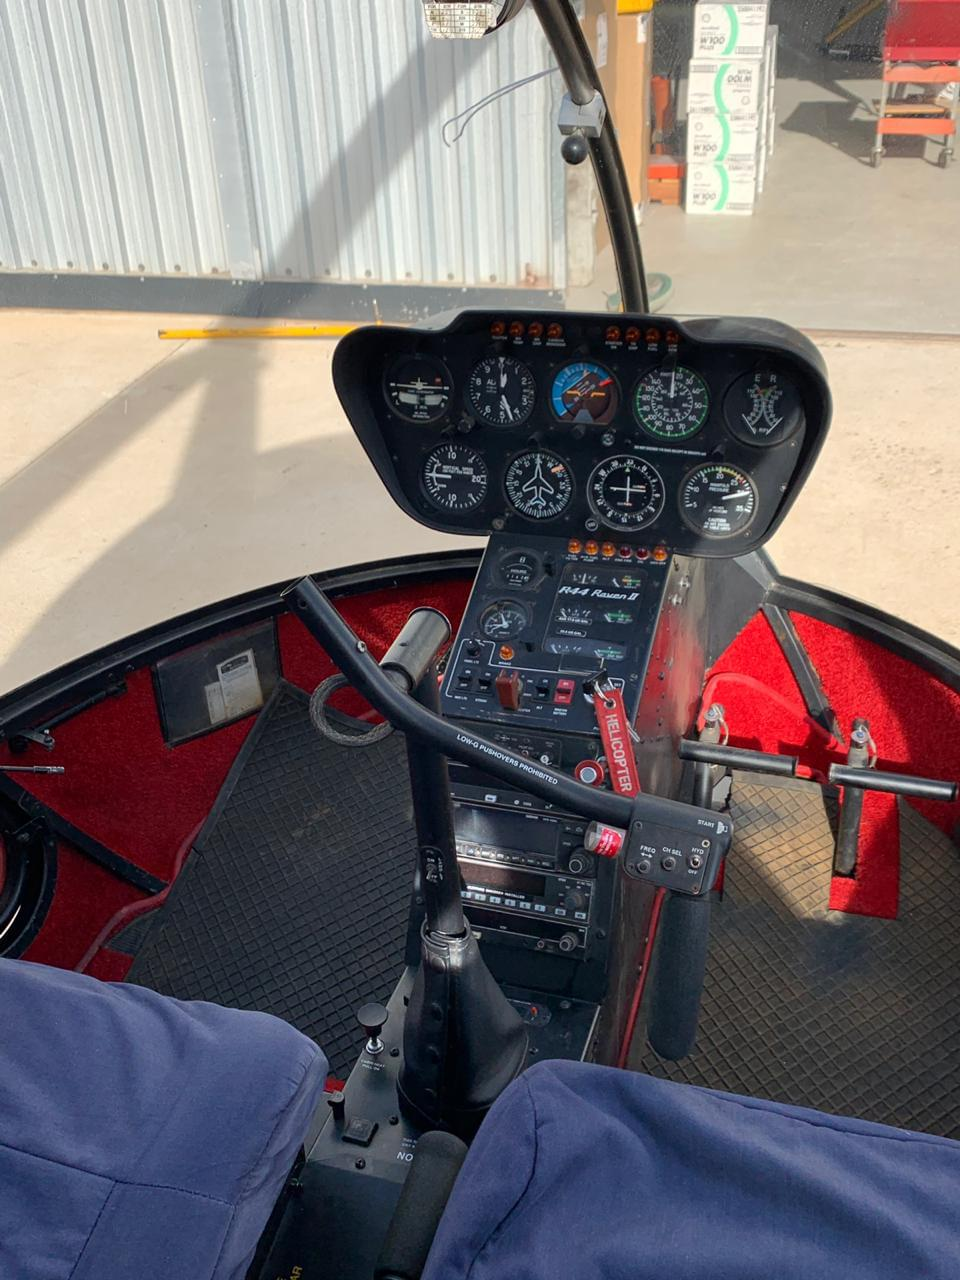 R44 helicopter for sale - Kriek Helicopters